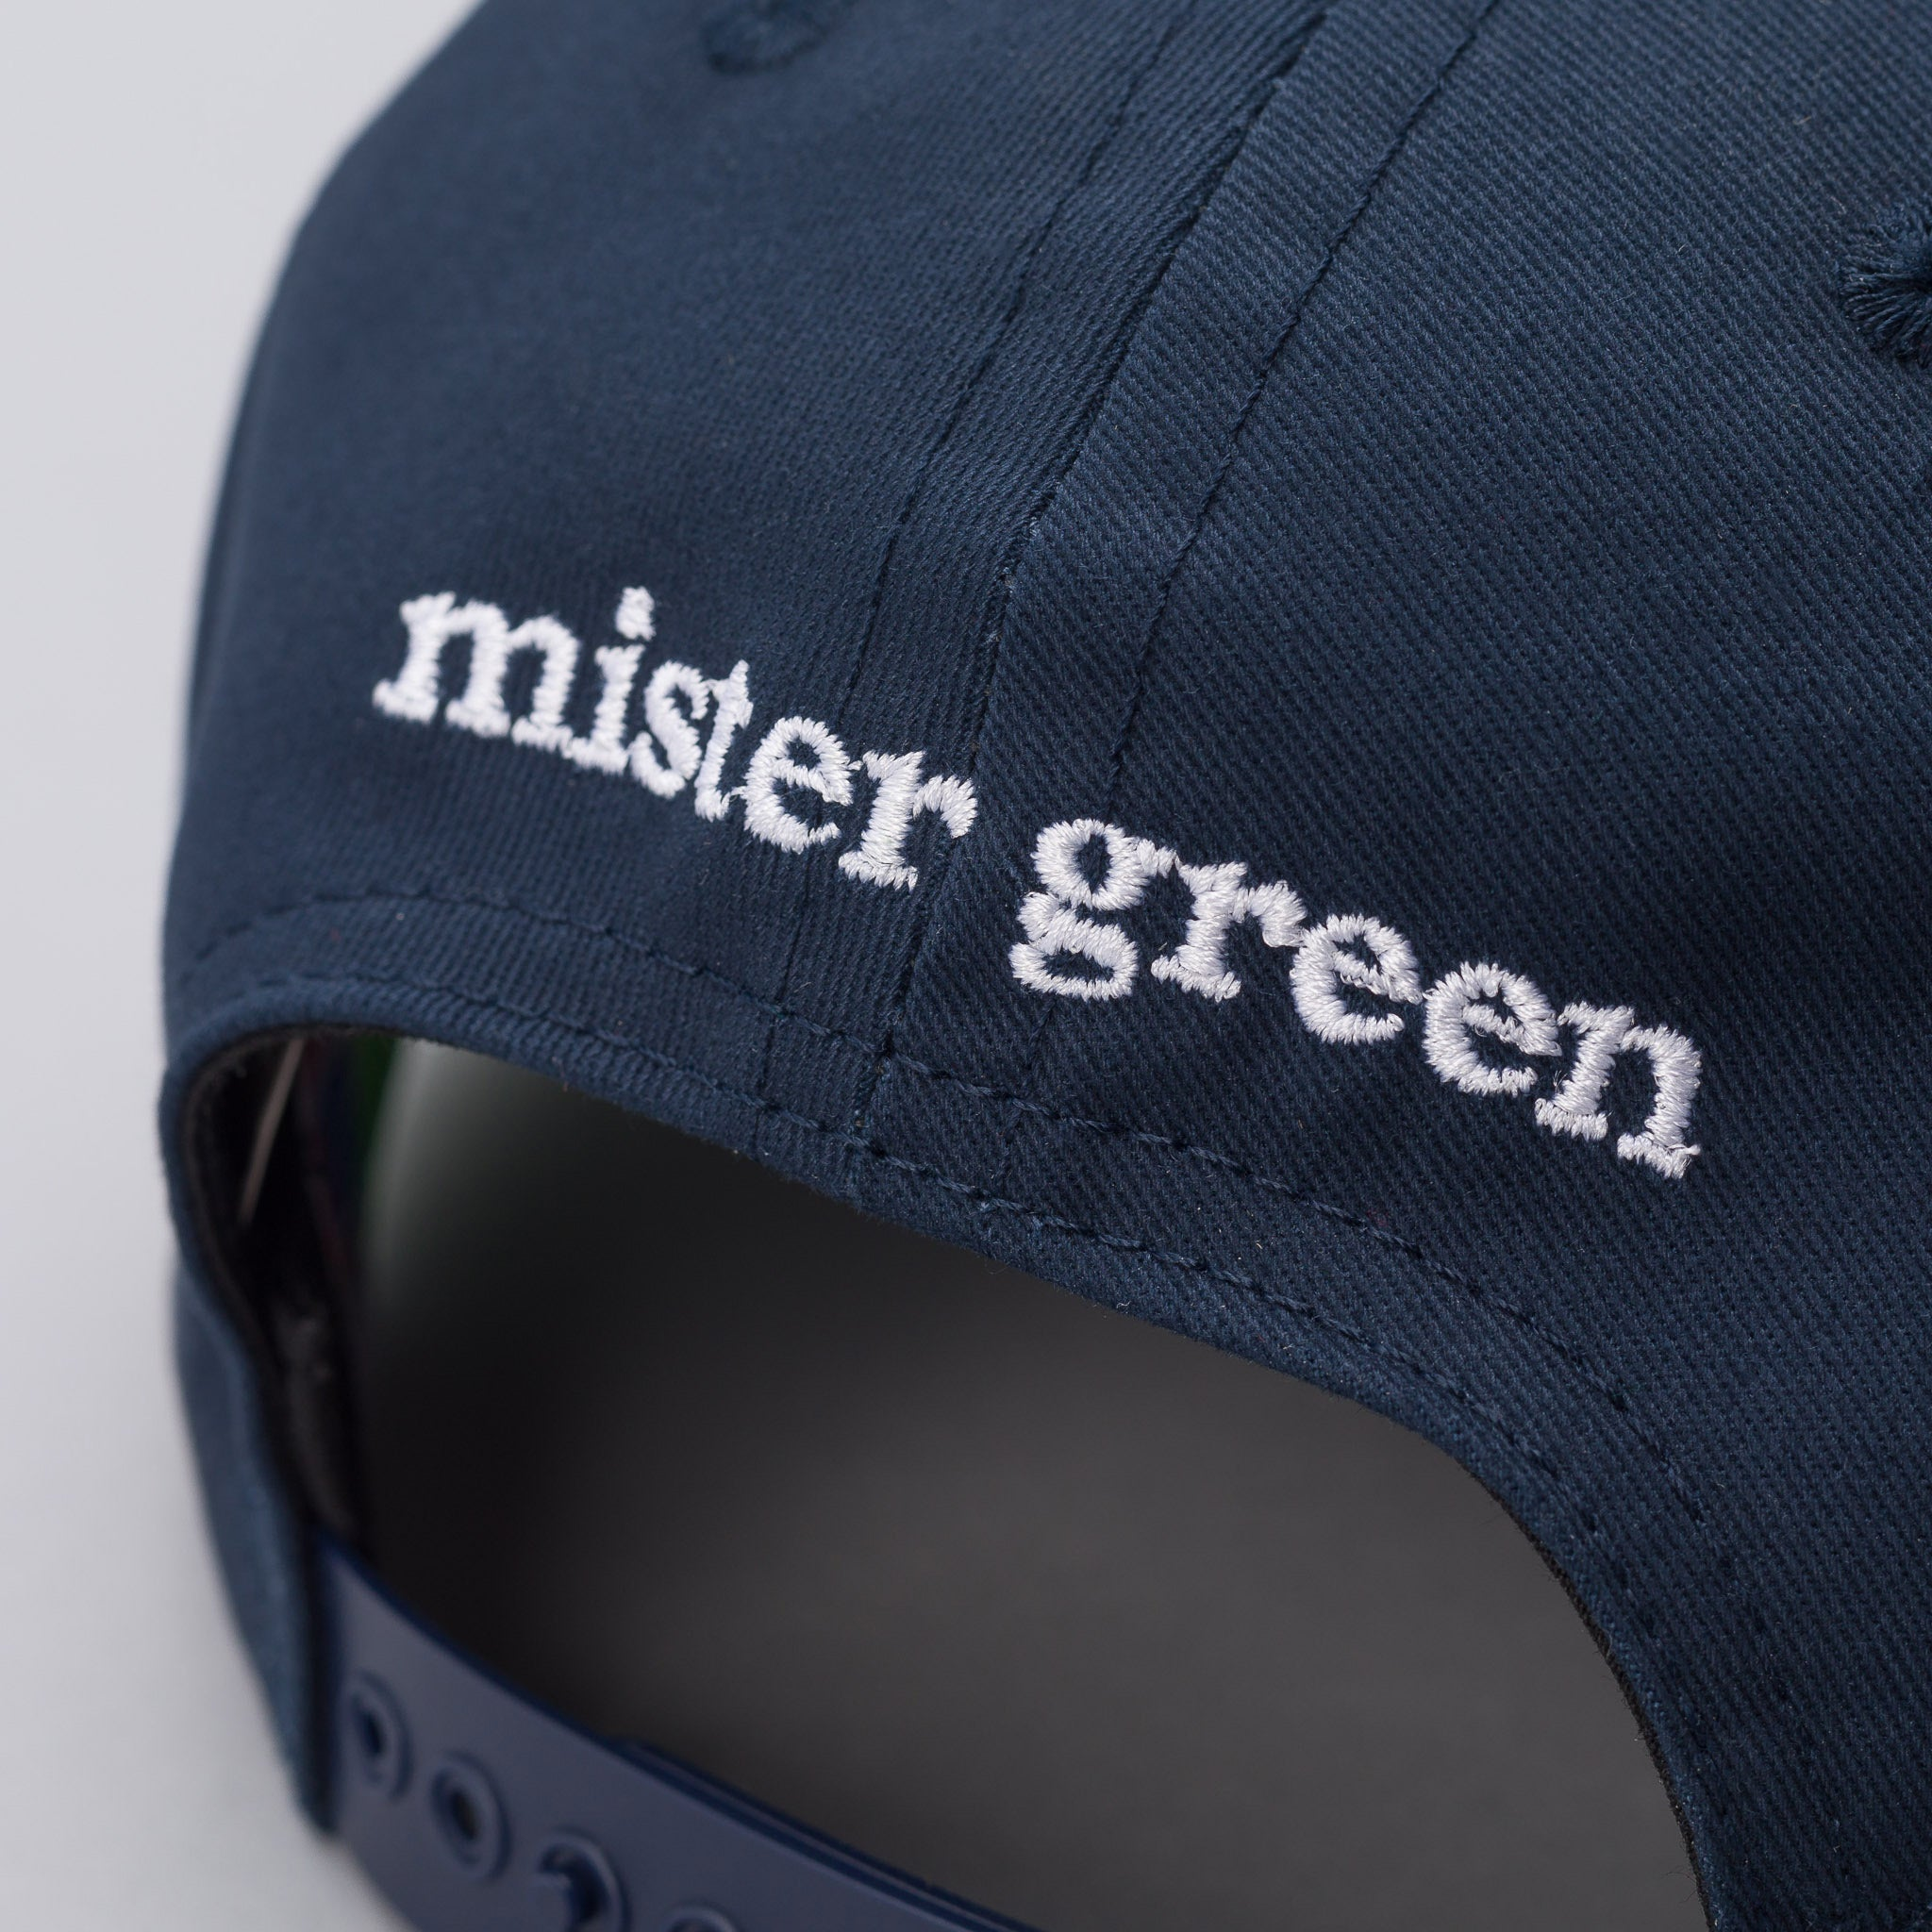 Mister green cody hudson peace sign cap in faded navy